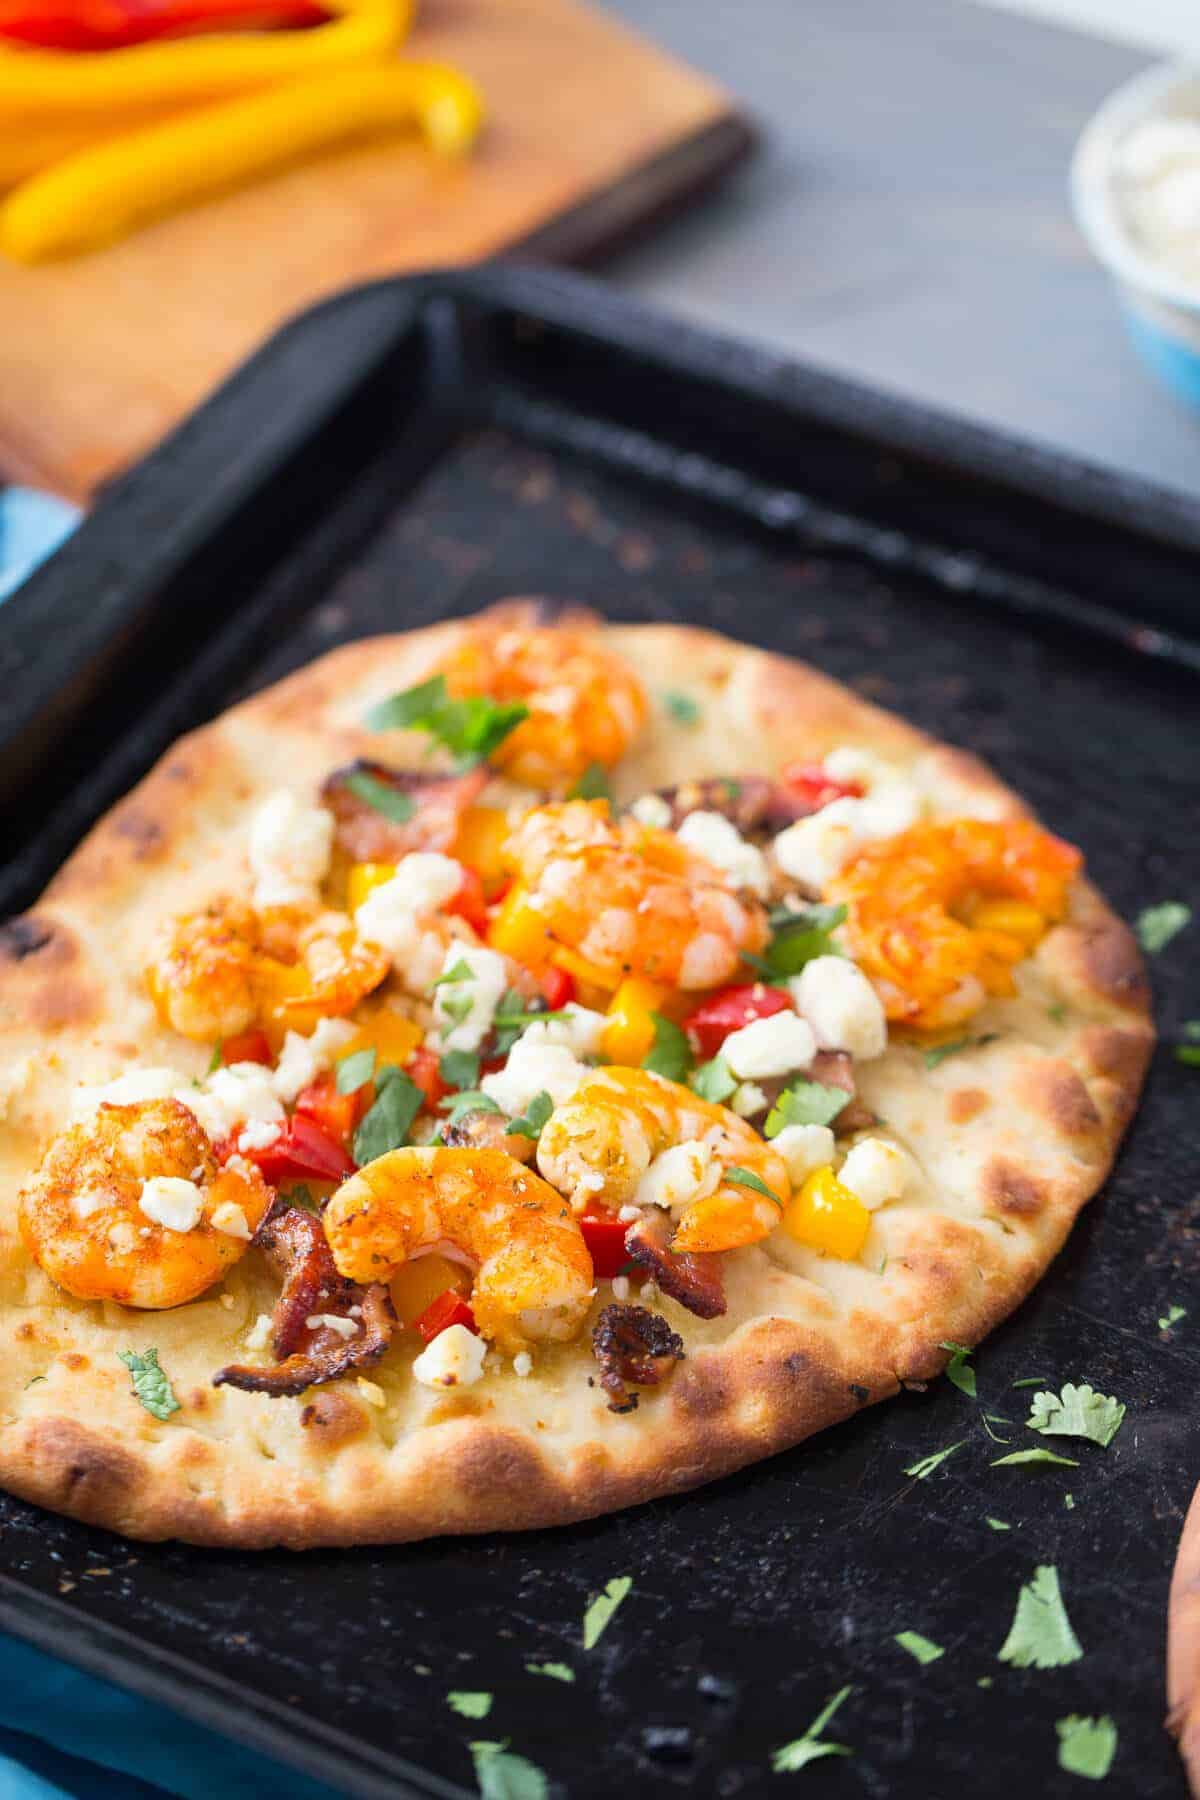 This Cajun Shrimp Pizza is so easy and the blend of flavors is amazing!